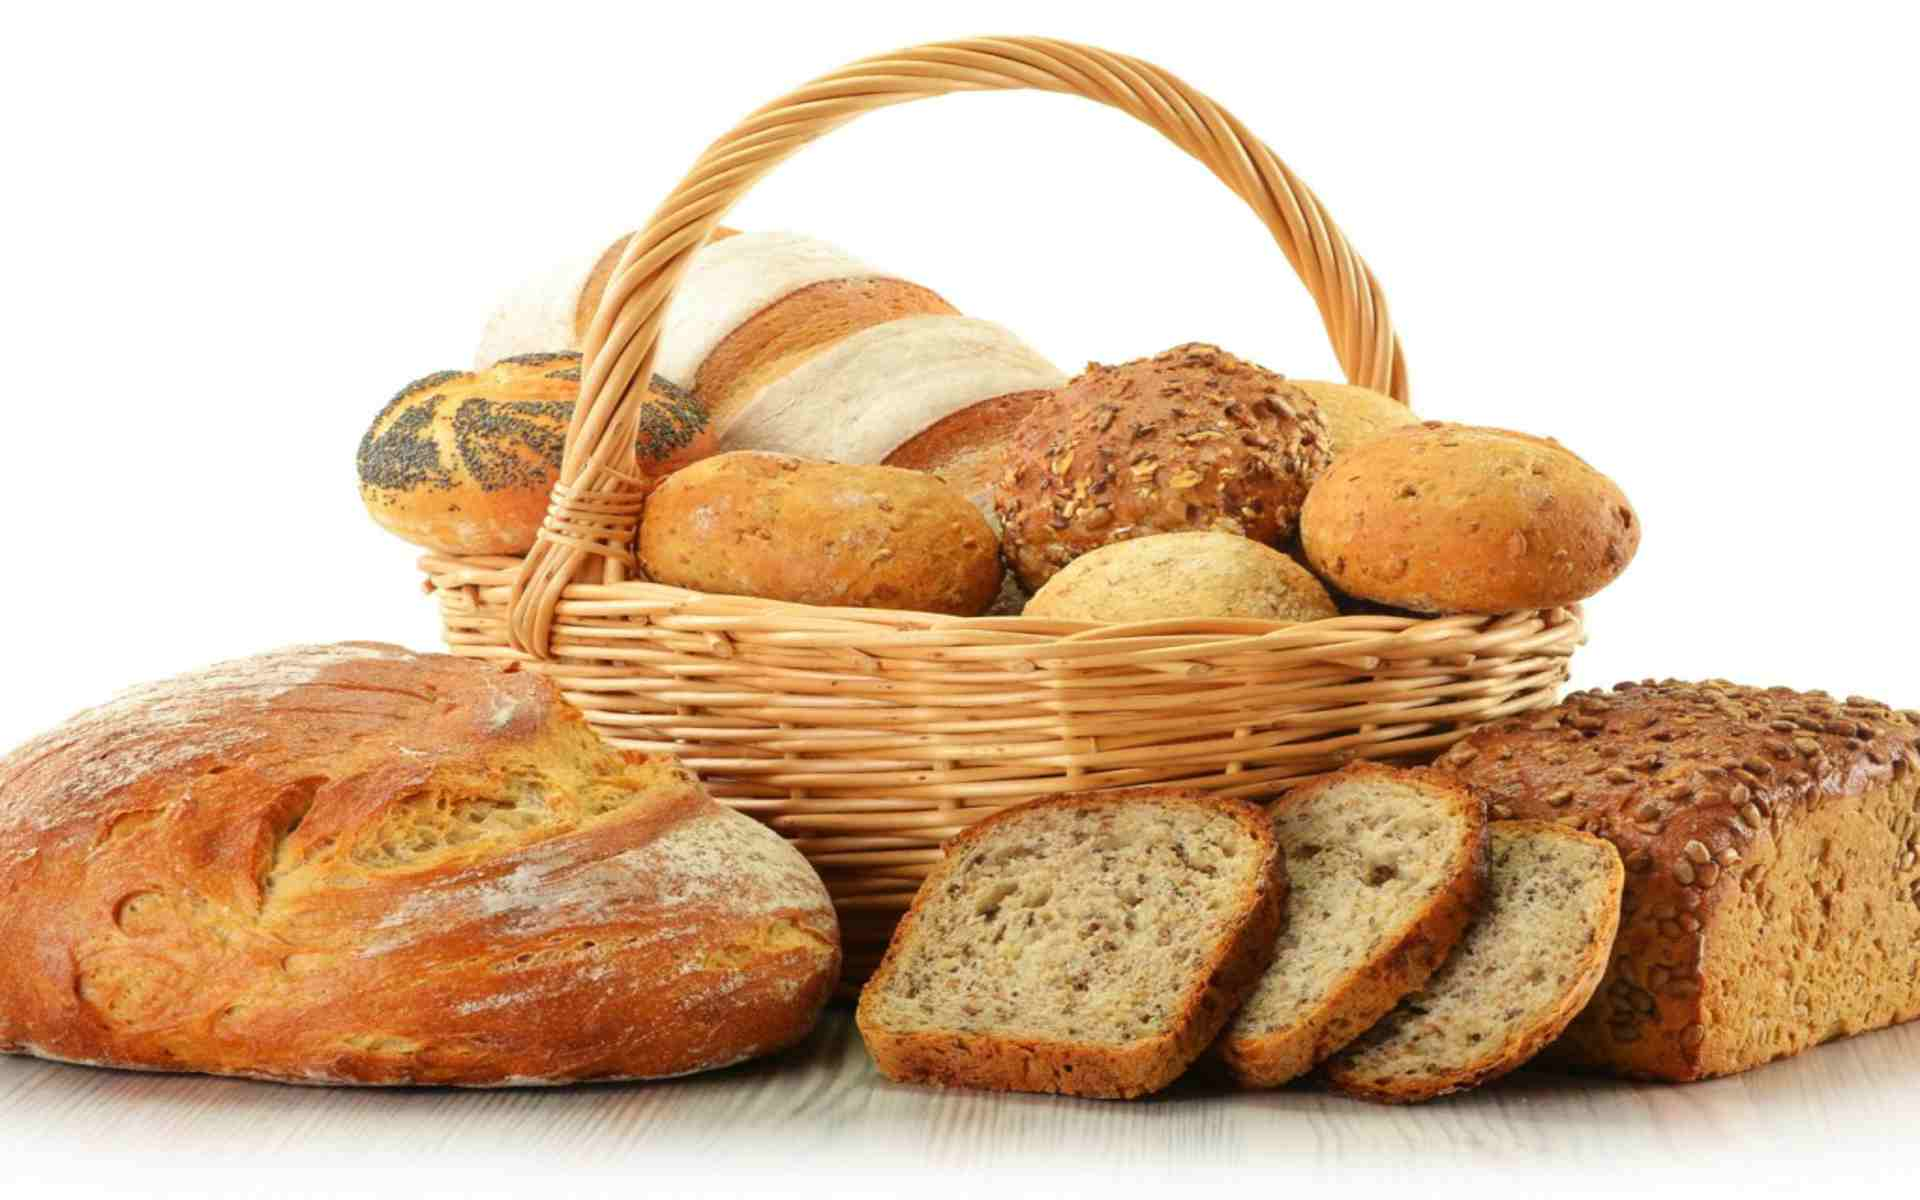 DOWNLOAD: basket bread rolls poppy seeds slices free picture 2560 x 1600